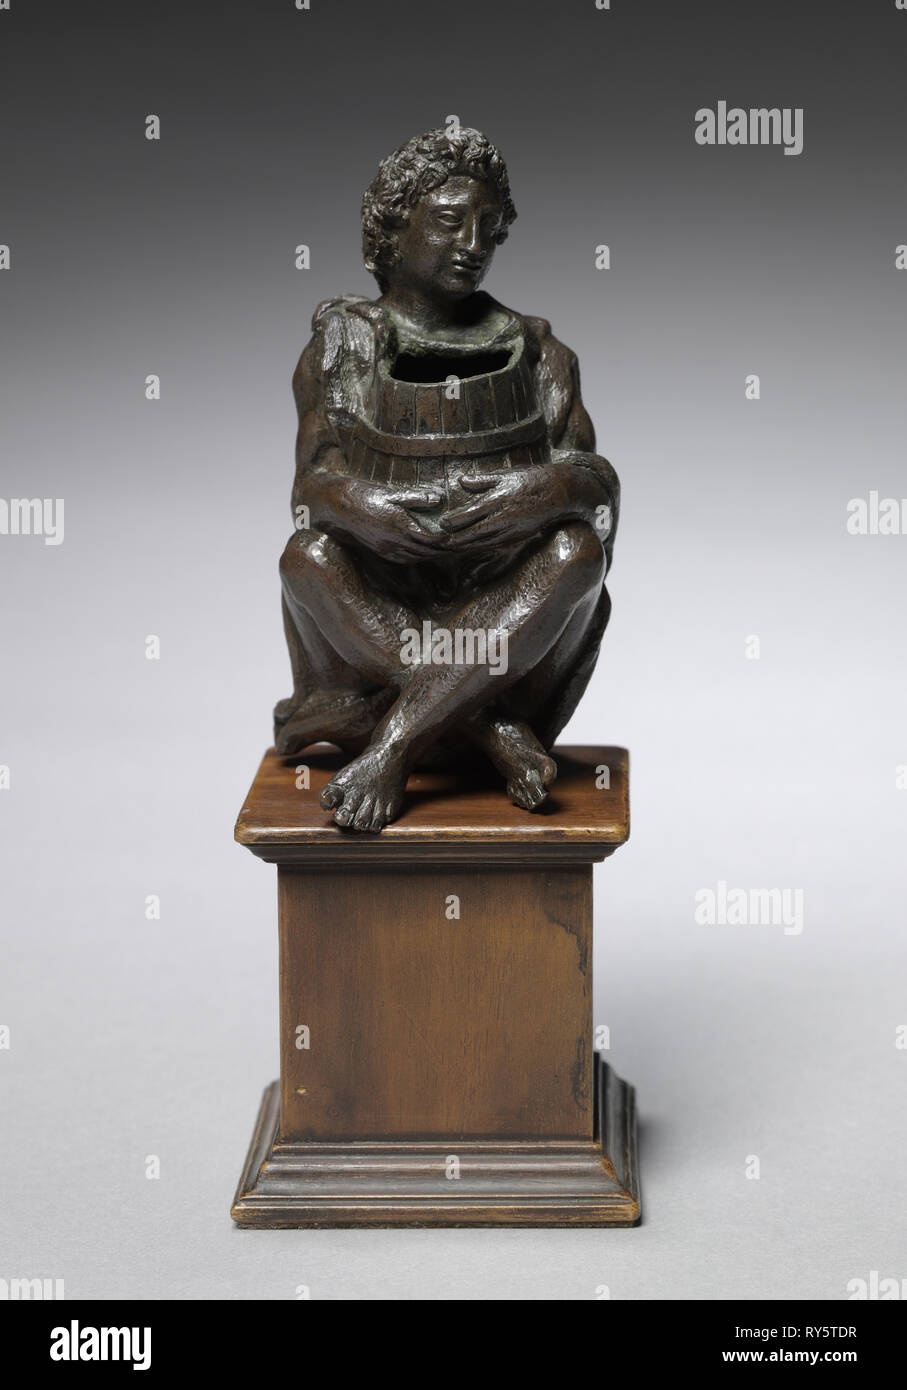 Seated Boy Clothed with Goat Skins Holding an Open Barrel, c. 1525. Italy, Padua, 16th century. Bronze; overall: 11.2 x 6 x 6.5 cm (4 7/16 x 2 3/8 x 2 9/16 in Stock Photo